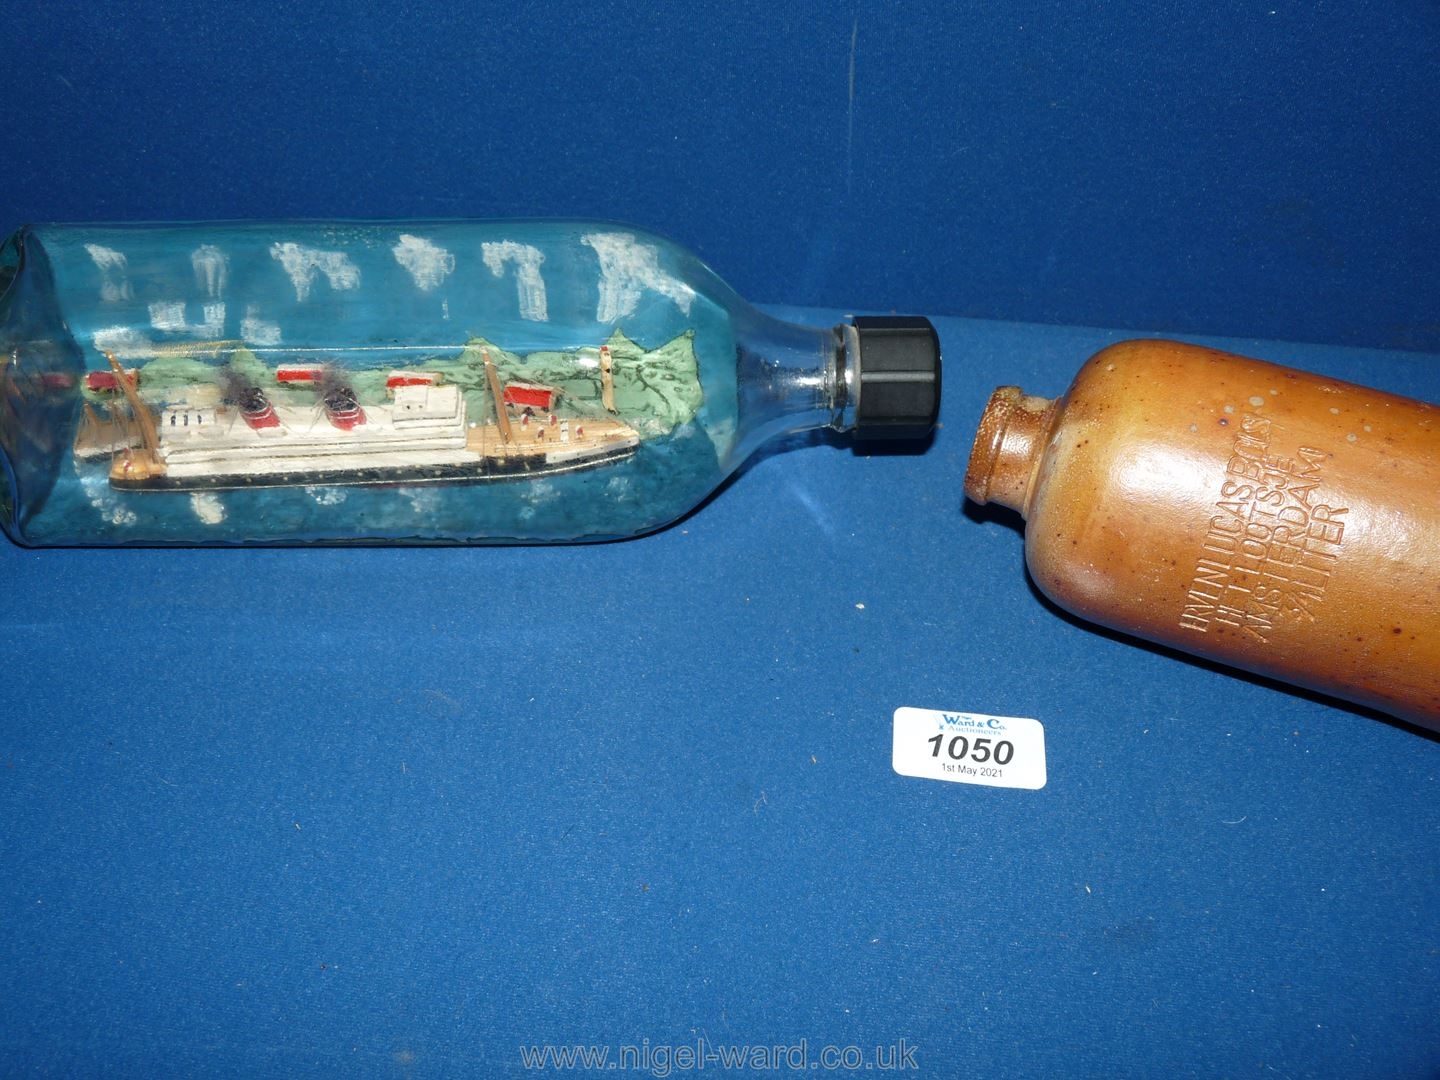 An old Ship in a bottle with painted hilly landscape behind; - Image 2 of 2